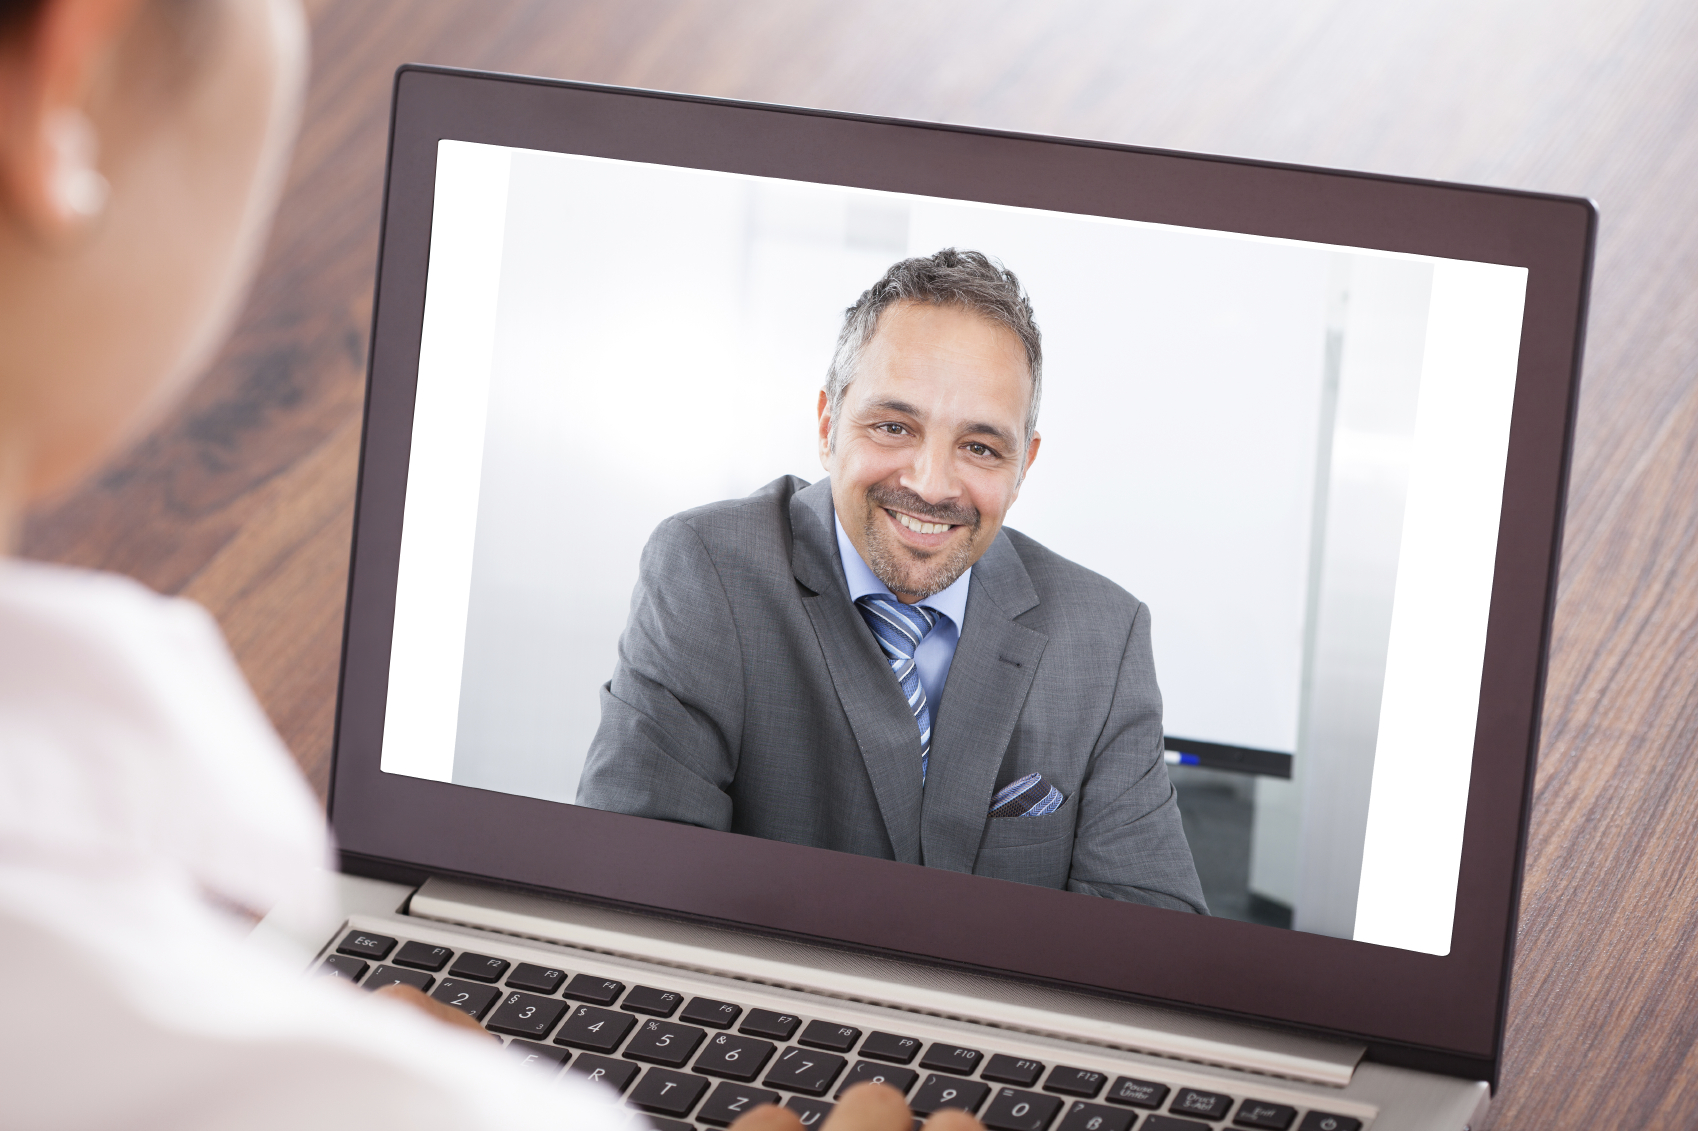 Interactive customer service webinar for remote employees